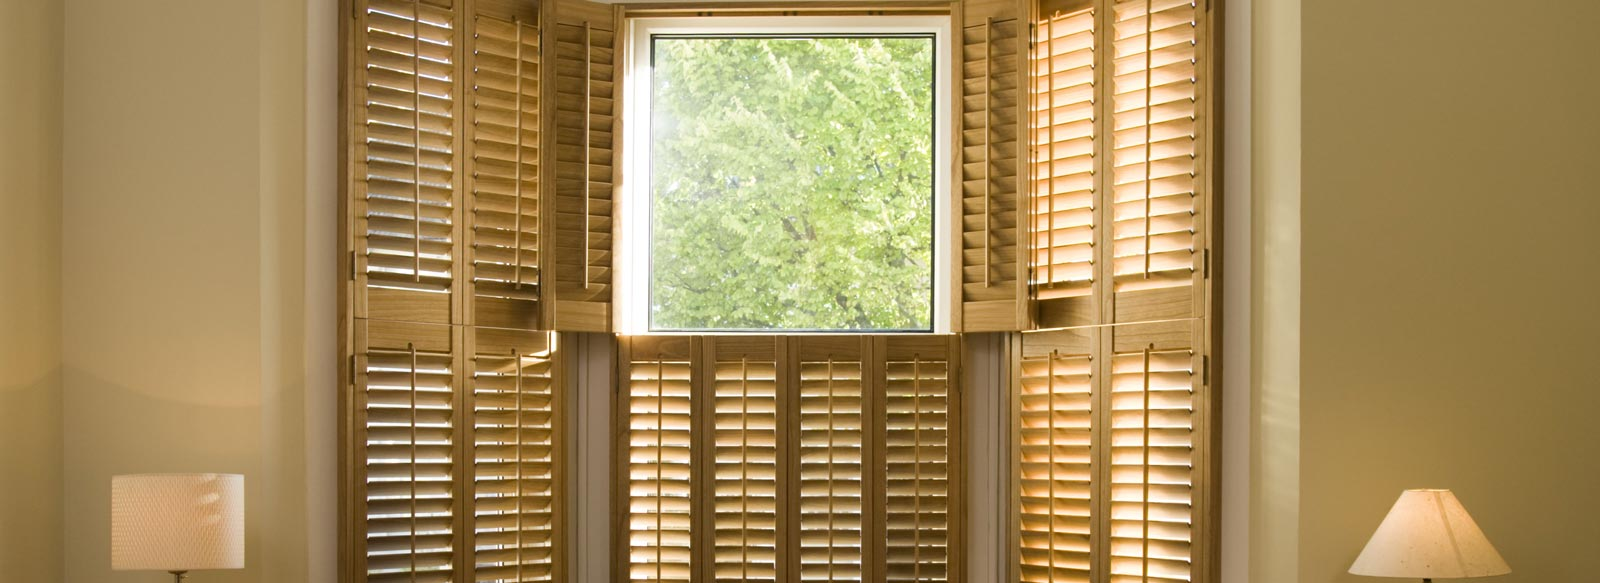 marla-cafe-style-shutters1a